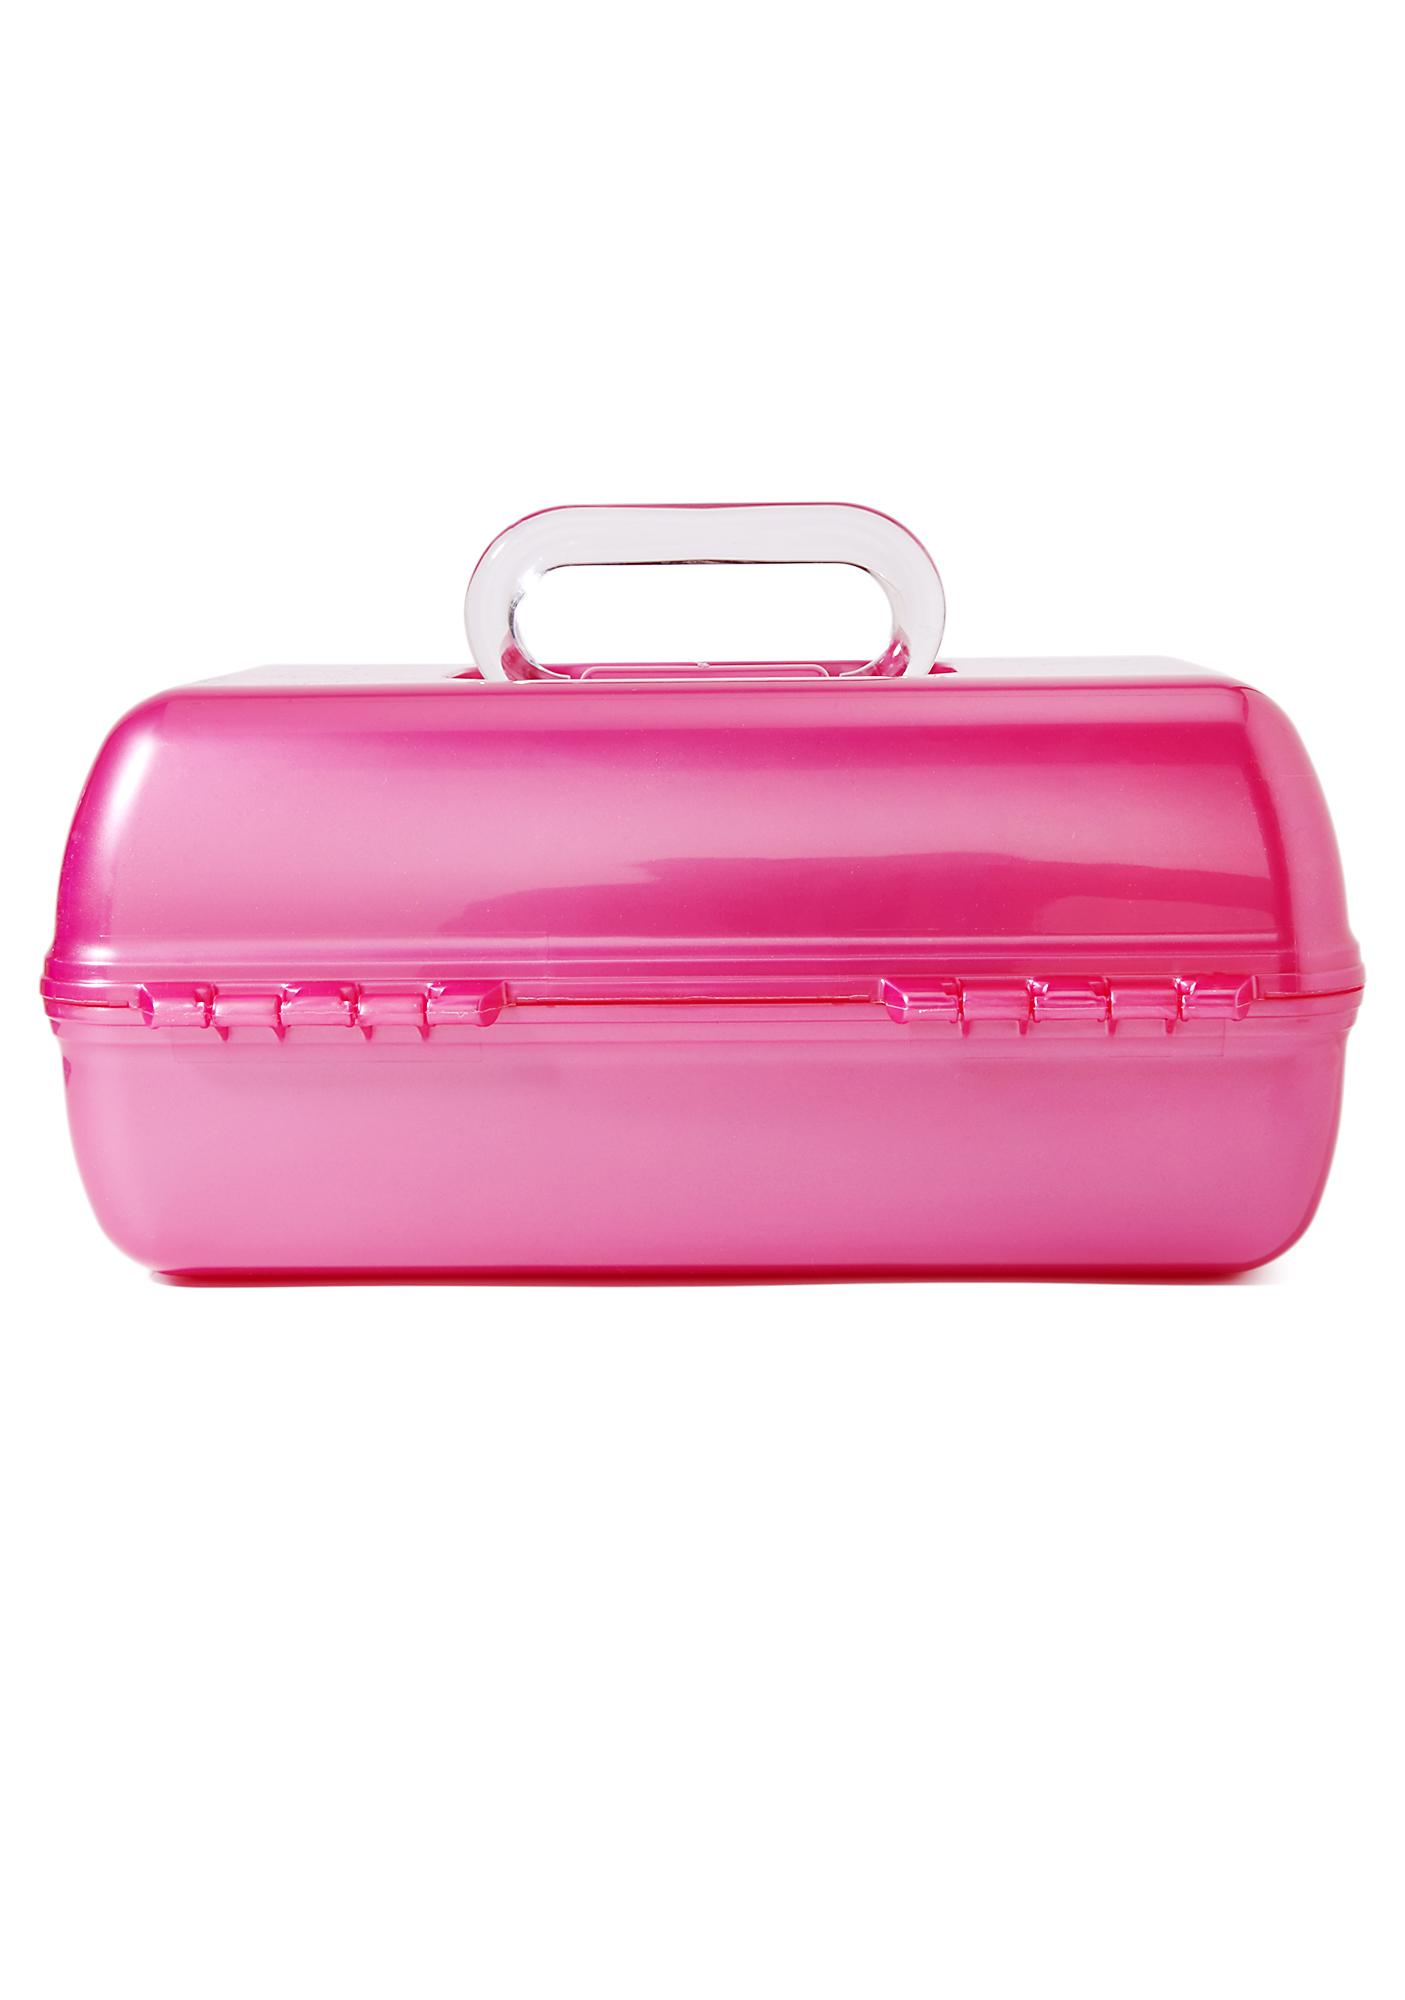 Caboodles Babe On The Go Girl Makeup Case